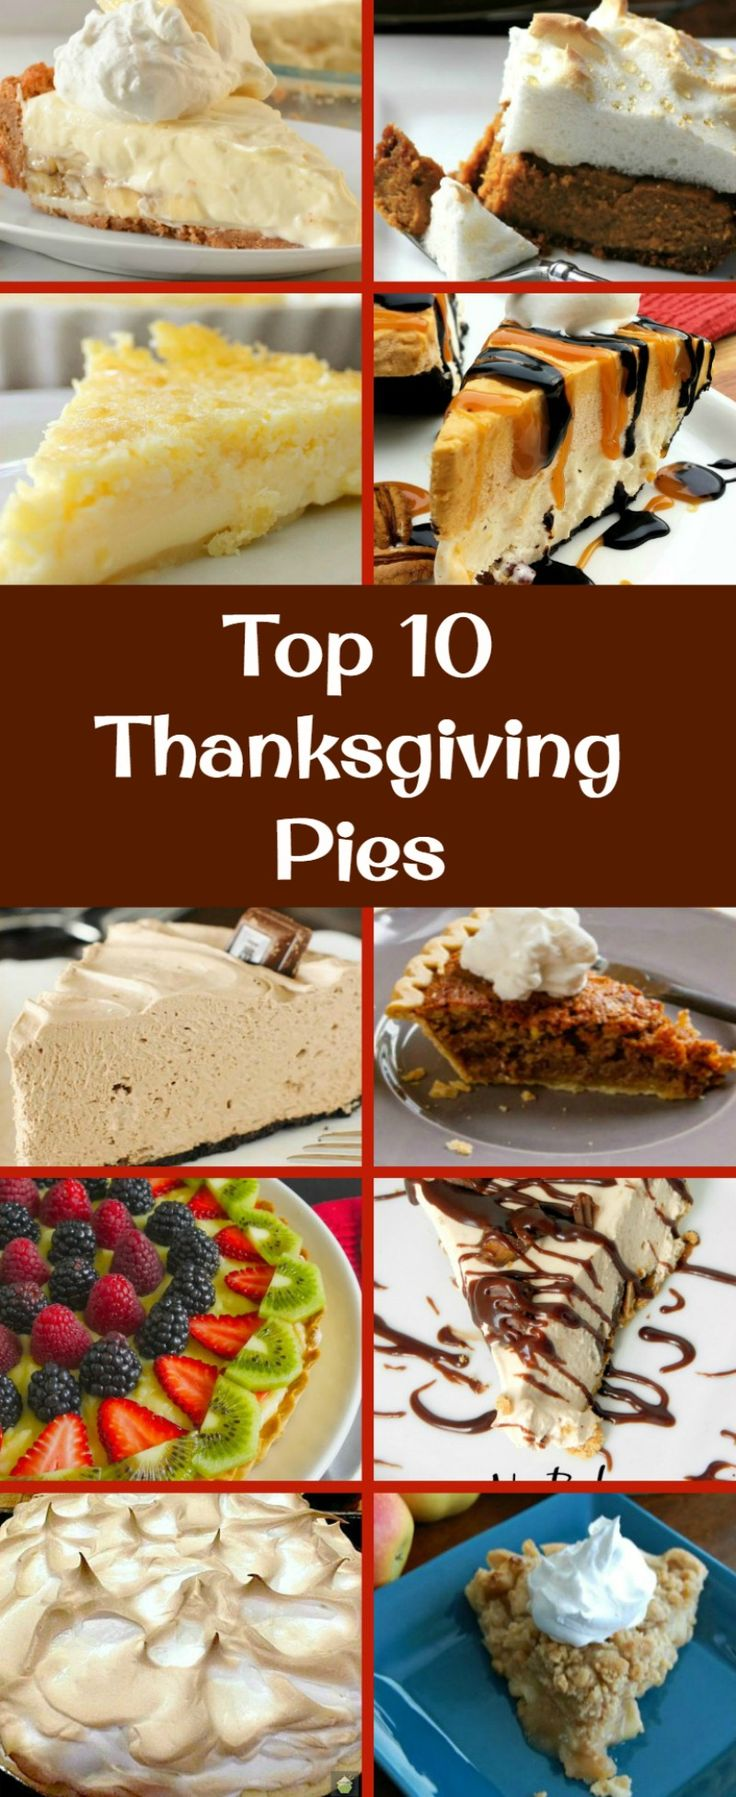 The BEST Top 10 Thanksgiving Pies. Here's a great selection of the very BEST of the BEST sweet pies you can make for Thanksgiving. Possible to Make ahead too!